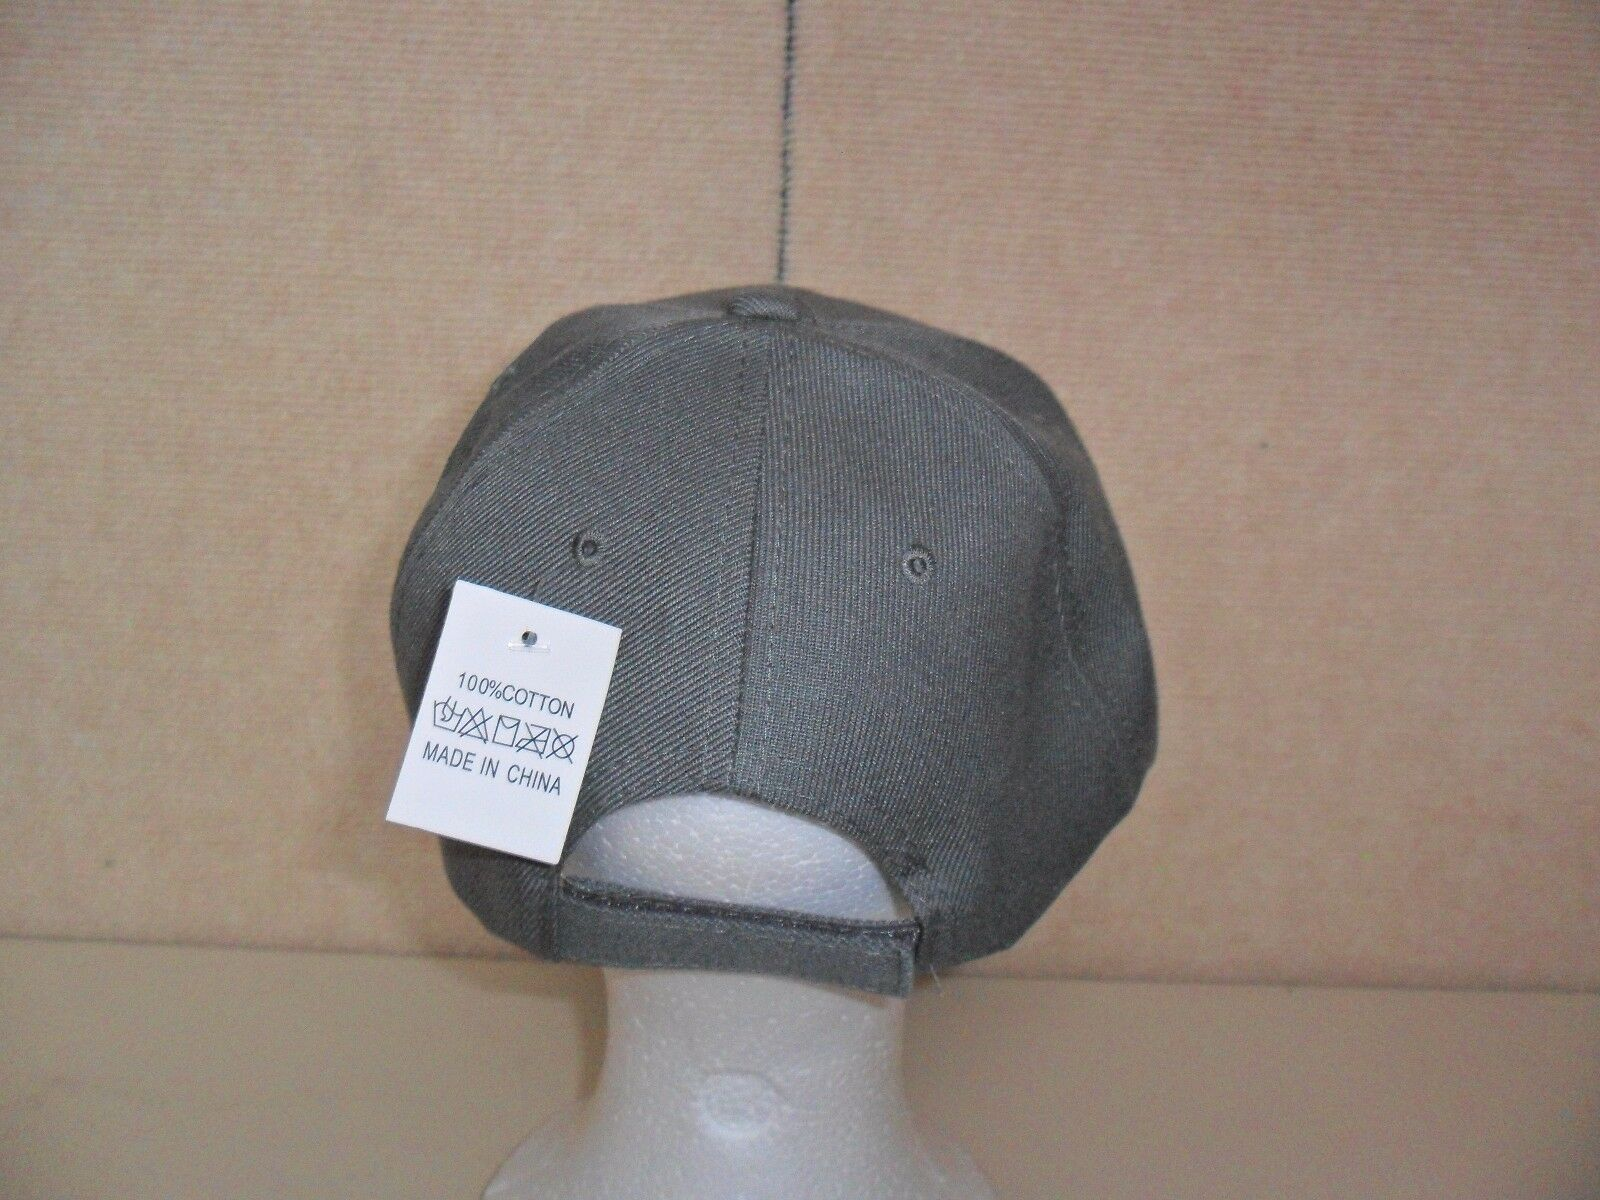 TOYOTA HAT TEAL TEAL TEAL / GREEN FAST FREE SHIPPING GREAT GIFT 078553